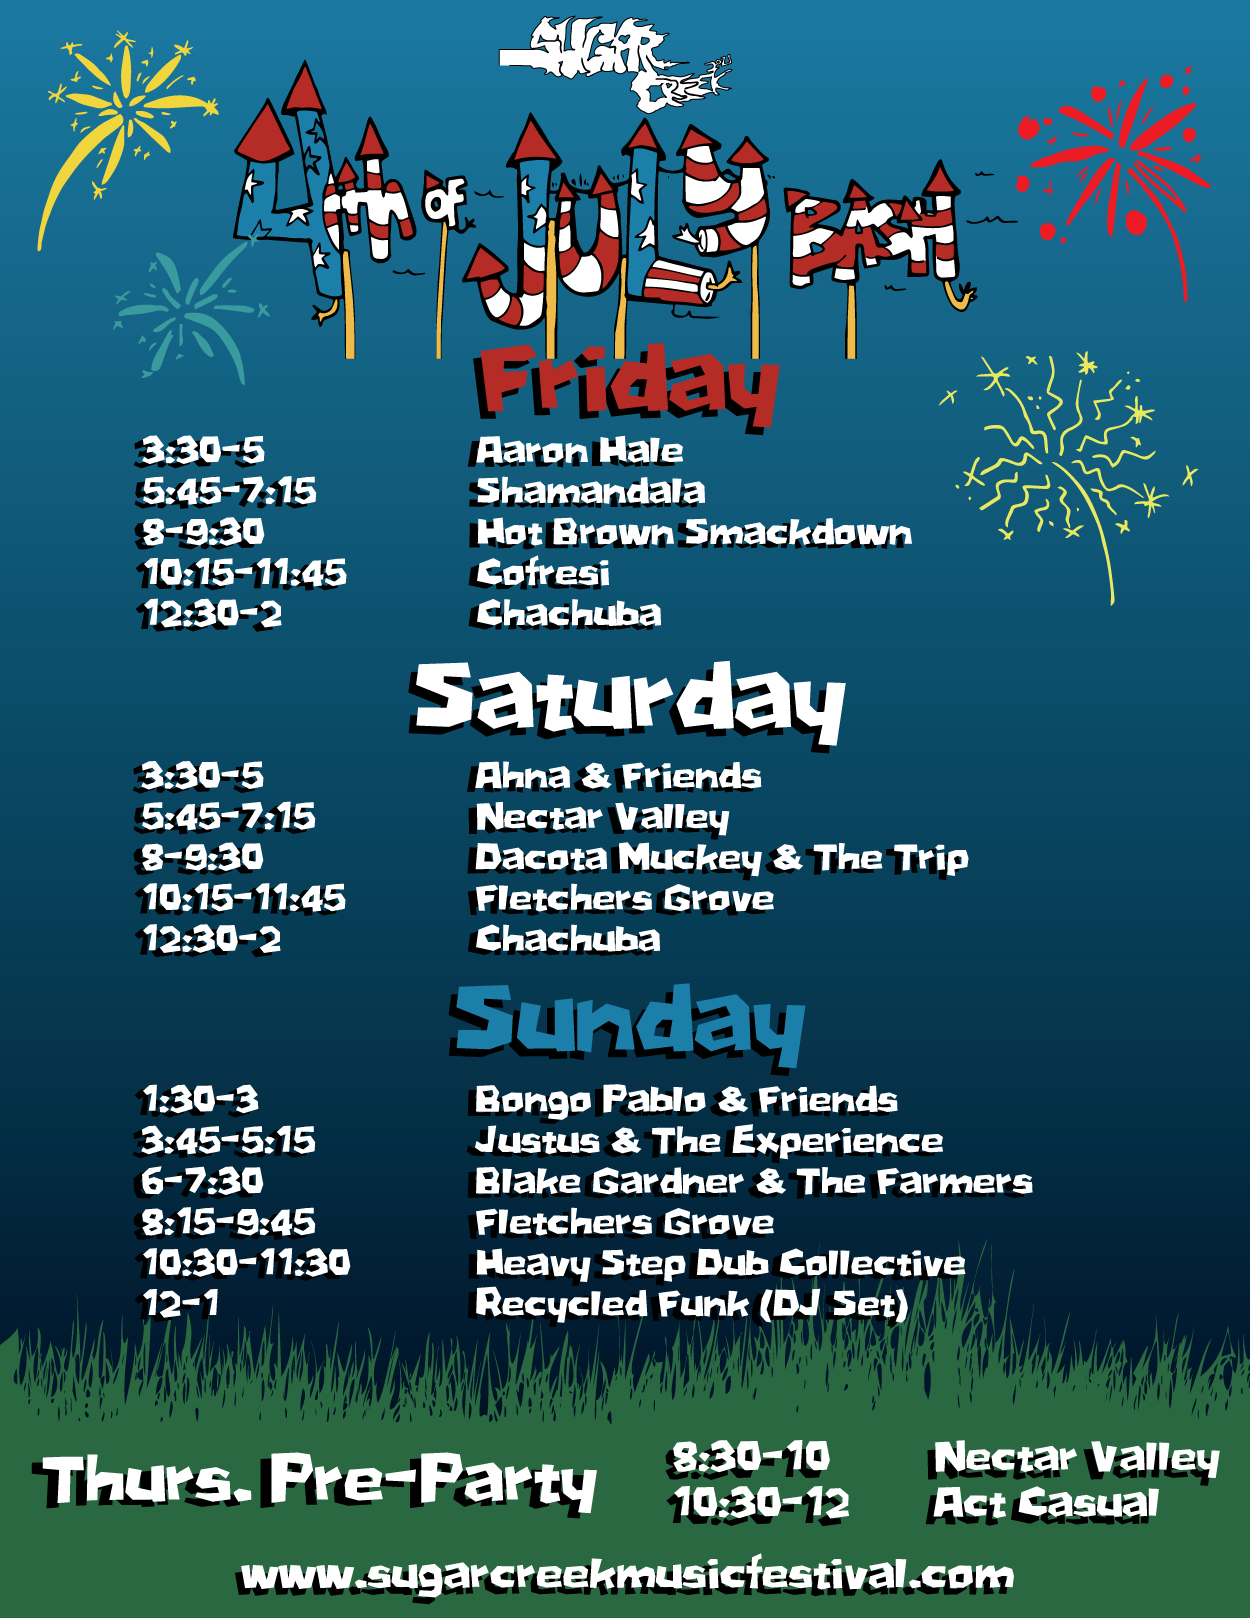 4th of July Bash Band Schedule